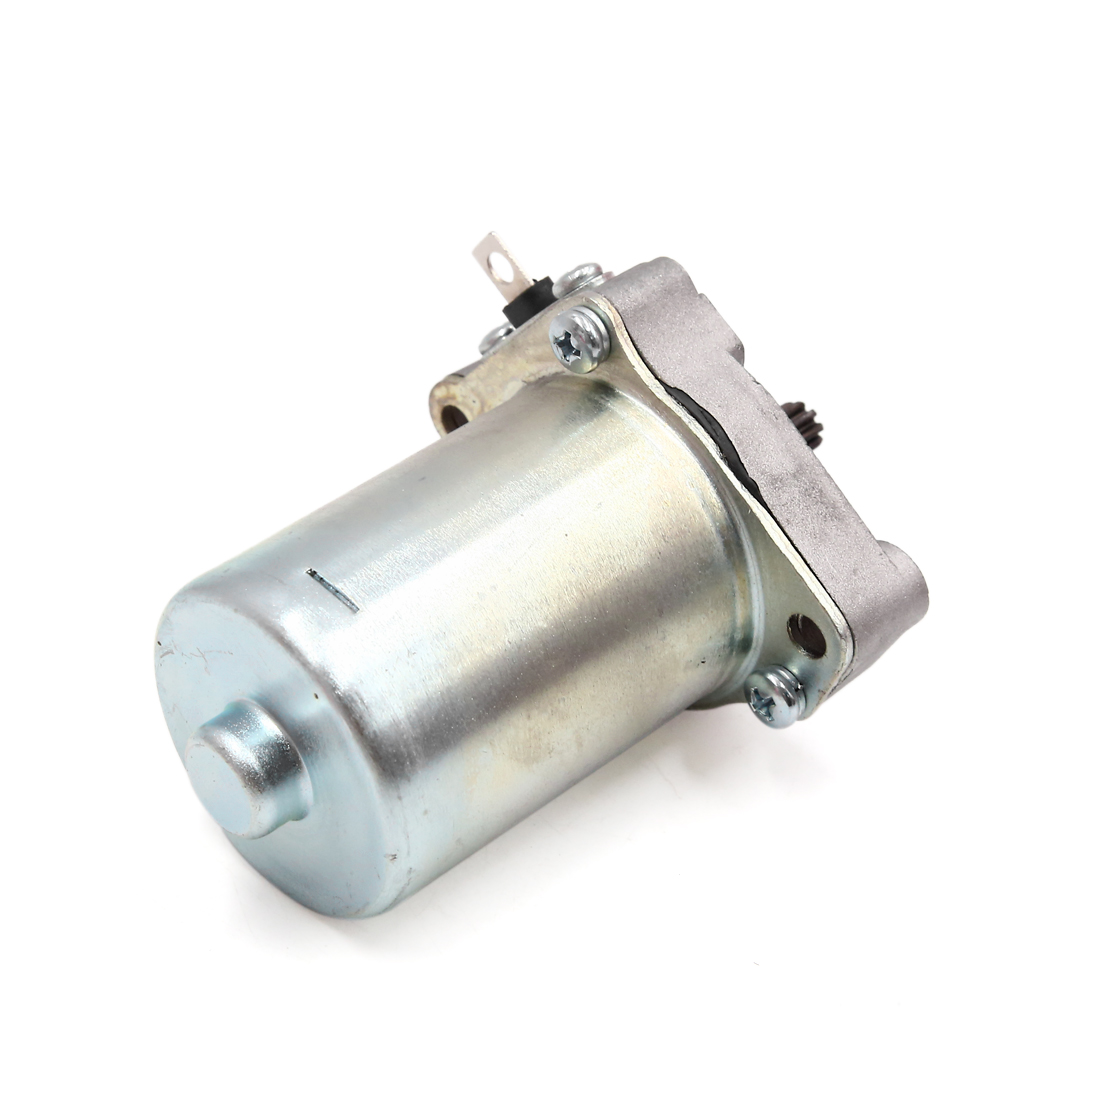 Silver Tone Metal Motorcycle Motorbike Engine Power Starter Motor for WH-100 - image 3 of 3